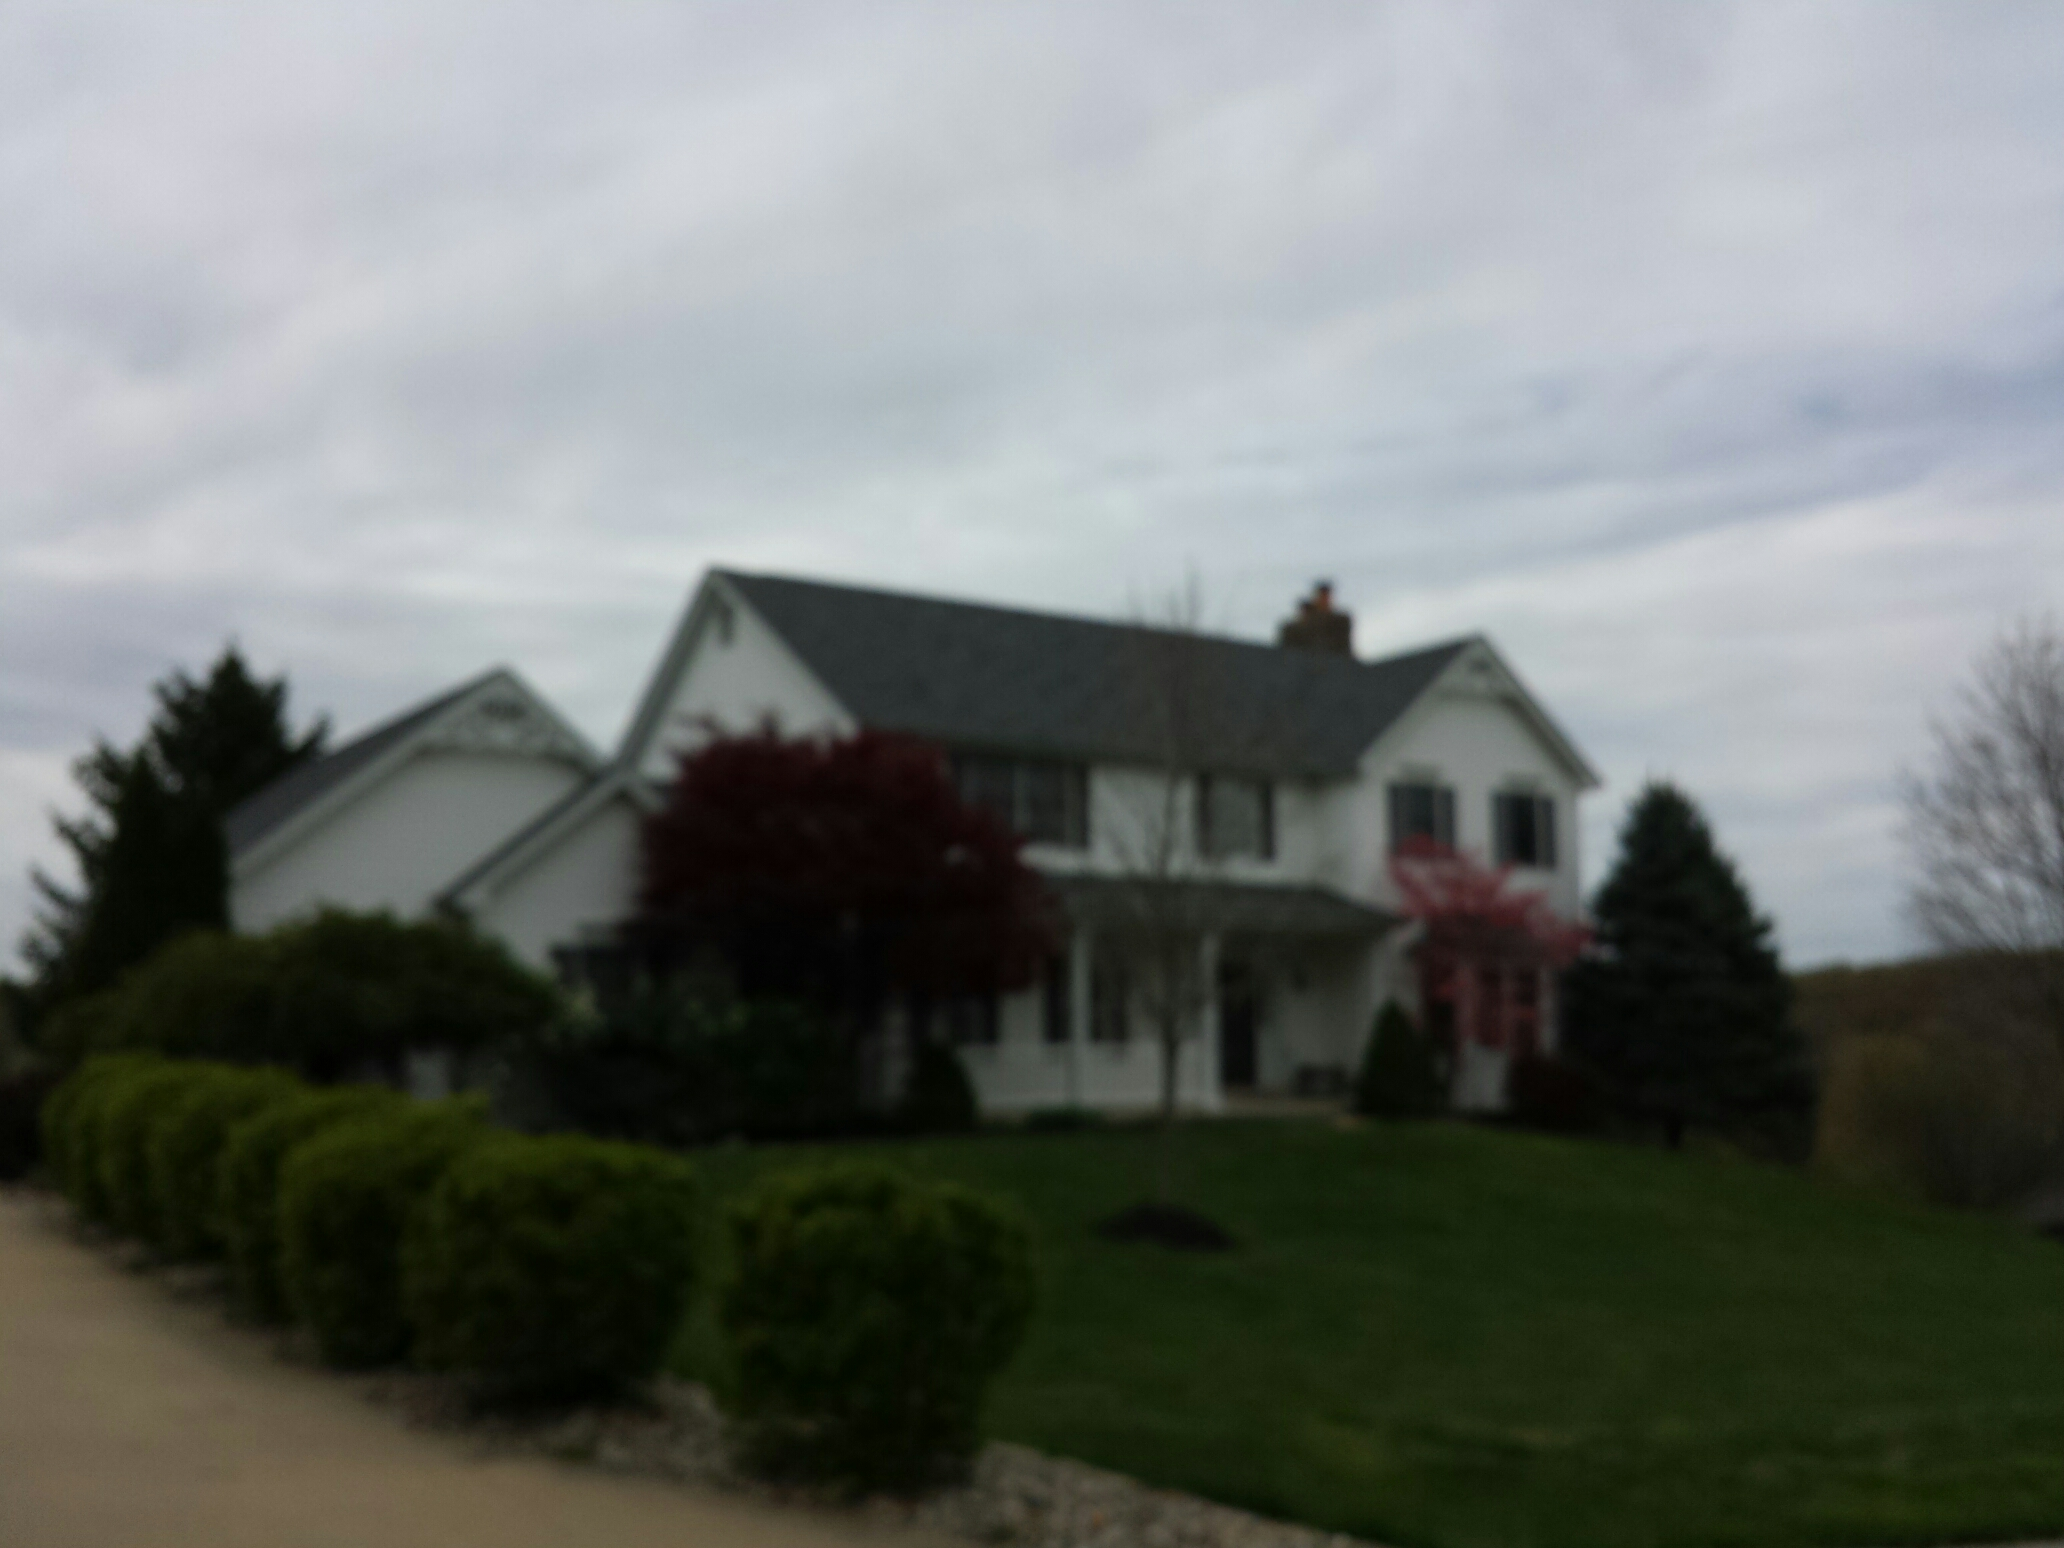 Wildwood, MO - New roof from insurance claim. Call Joe 314-550-7369